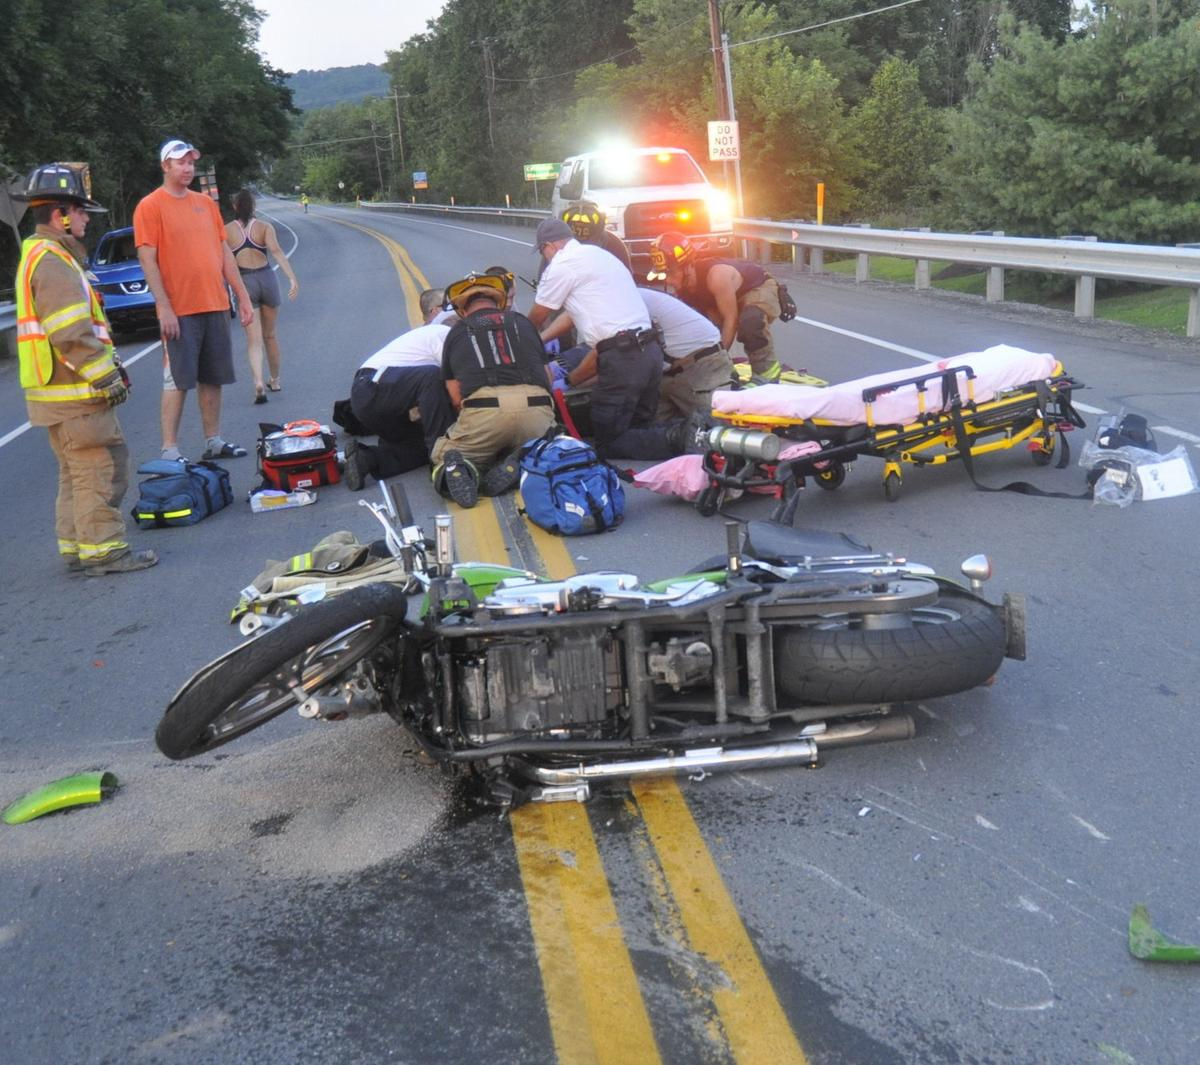 Two injured after motorcycle crash   Local   newsitem com